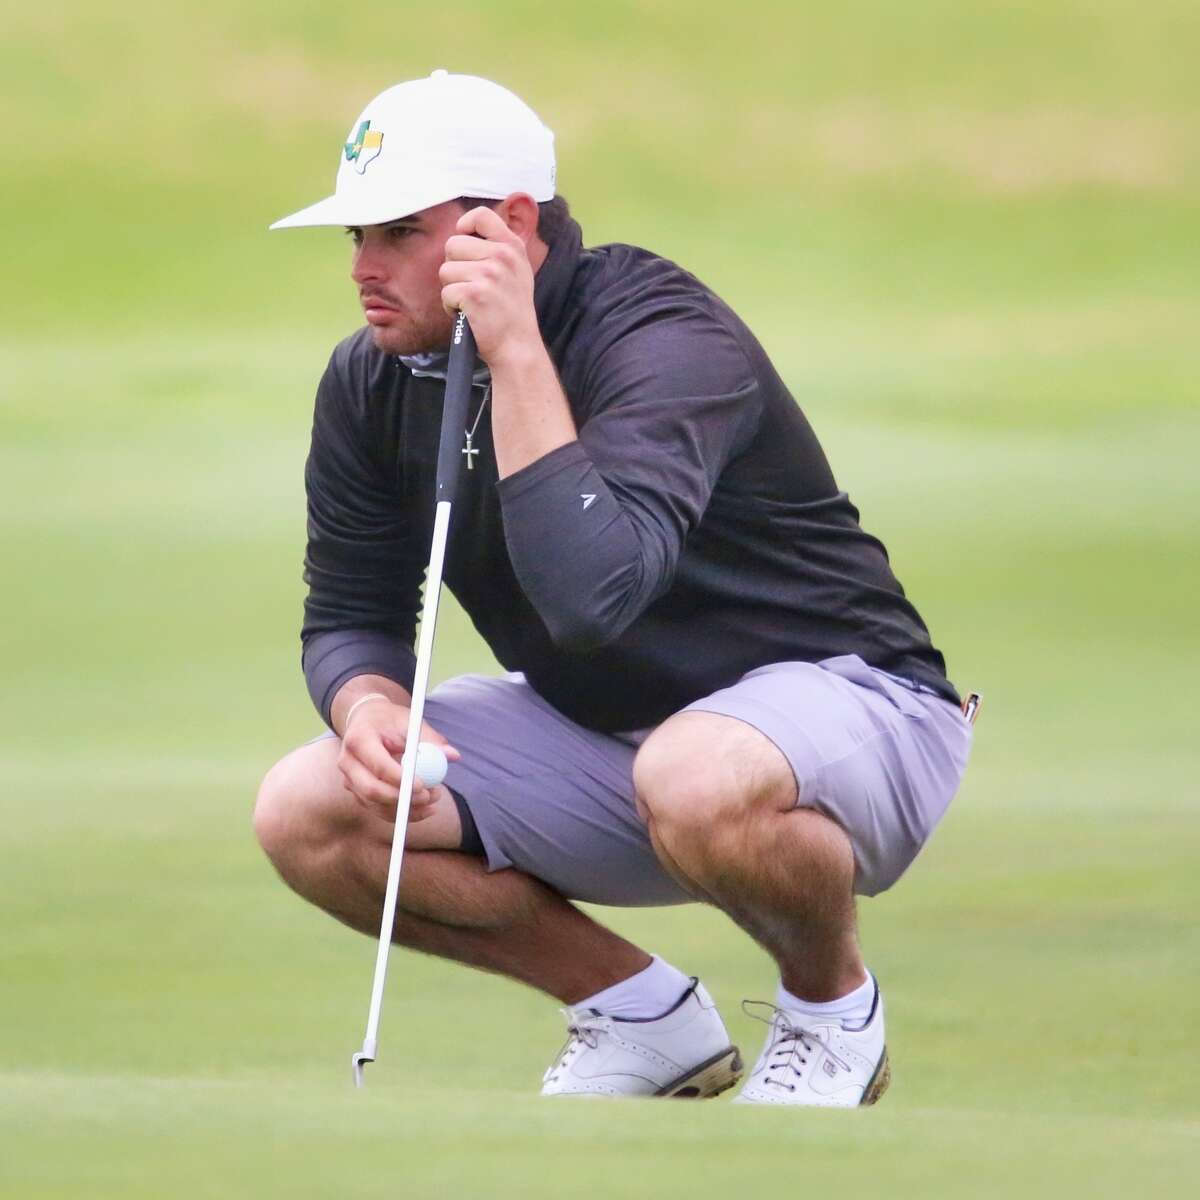 Midland College golfer JT Pittman surveys his shot during the second round of the NJCAA National Tournament at The Rawls Course in Lubbock on Tuesday.